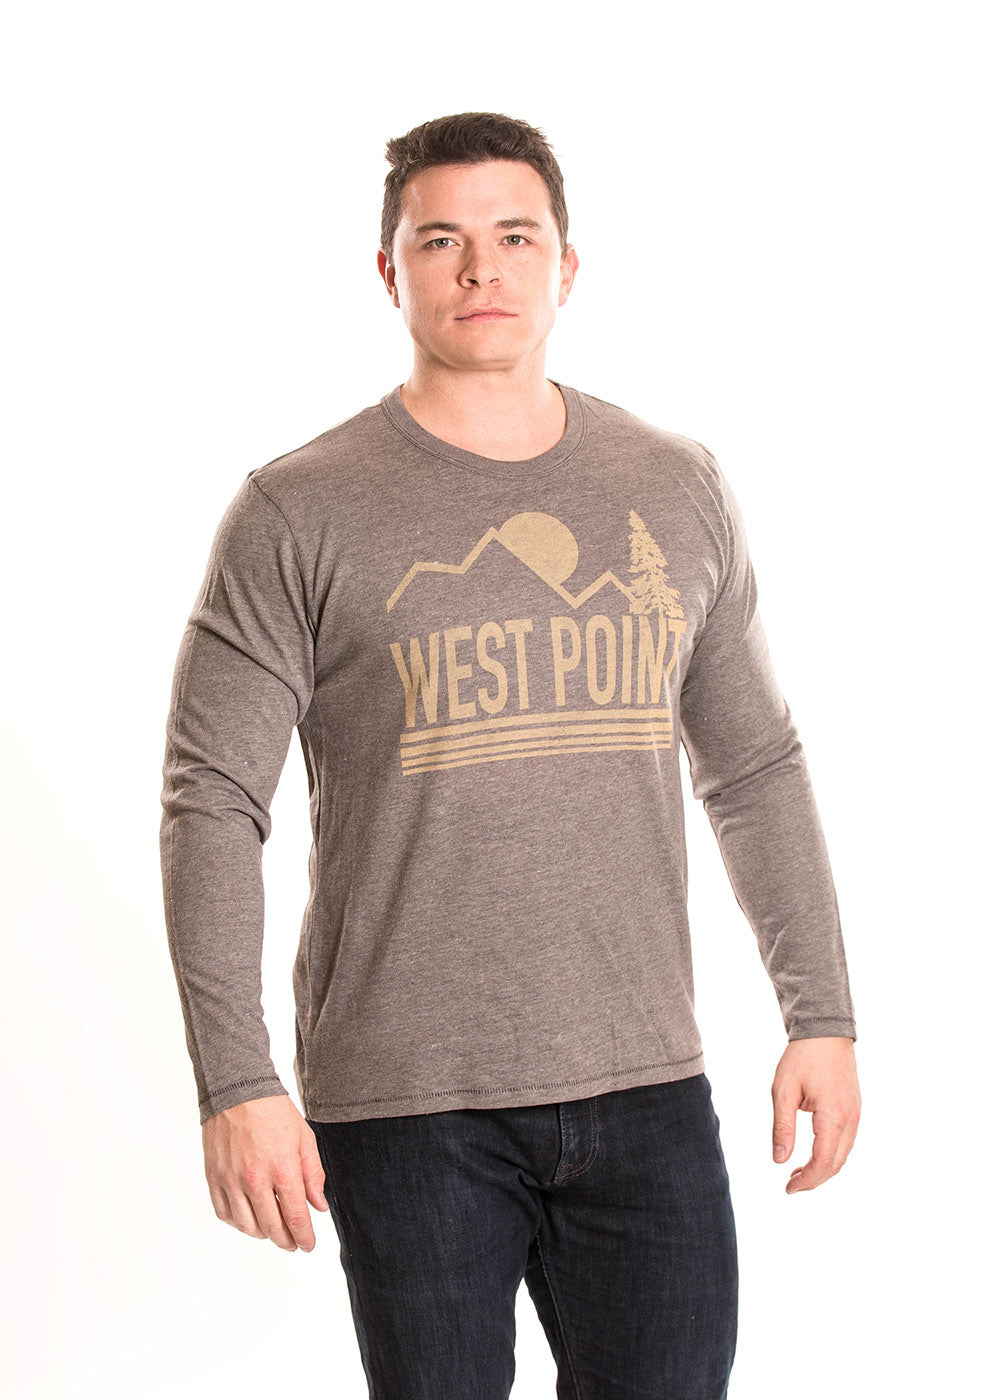 ARMY - WEST POINT Black Knights Men's Long Sleeve Tee